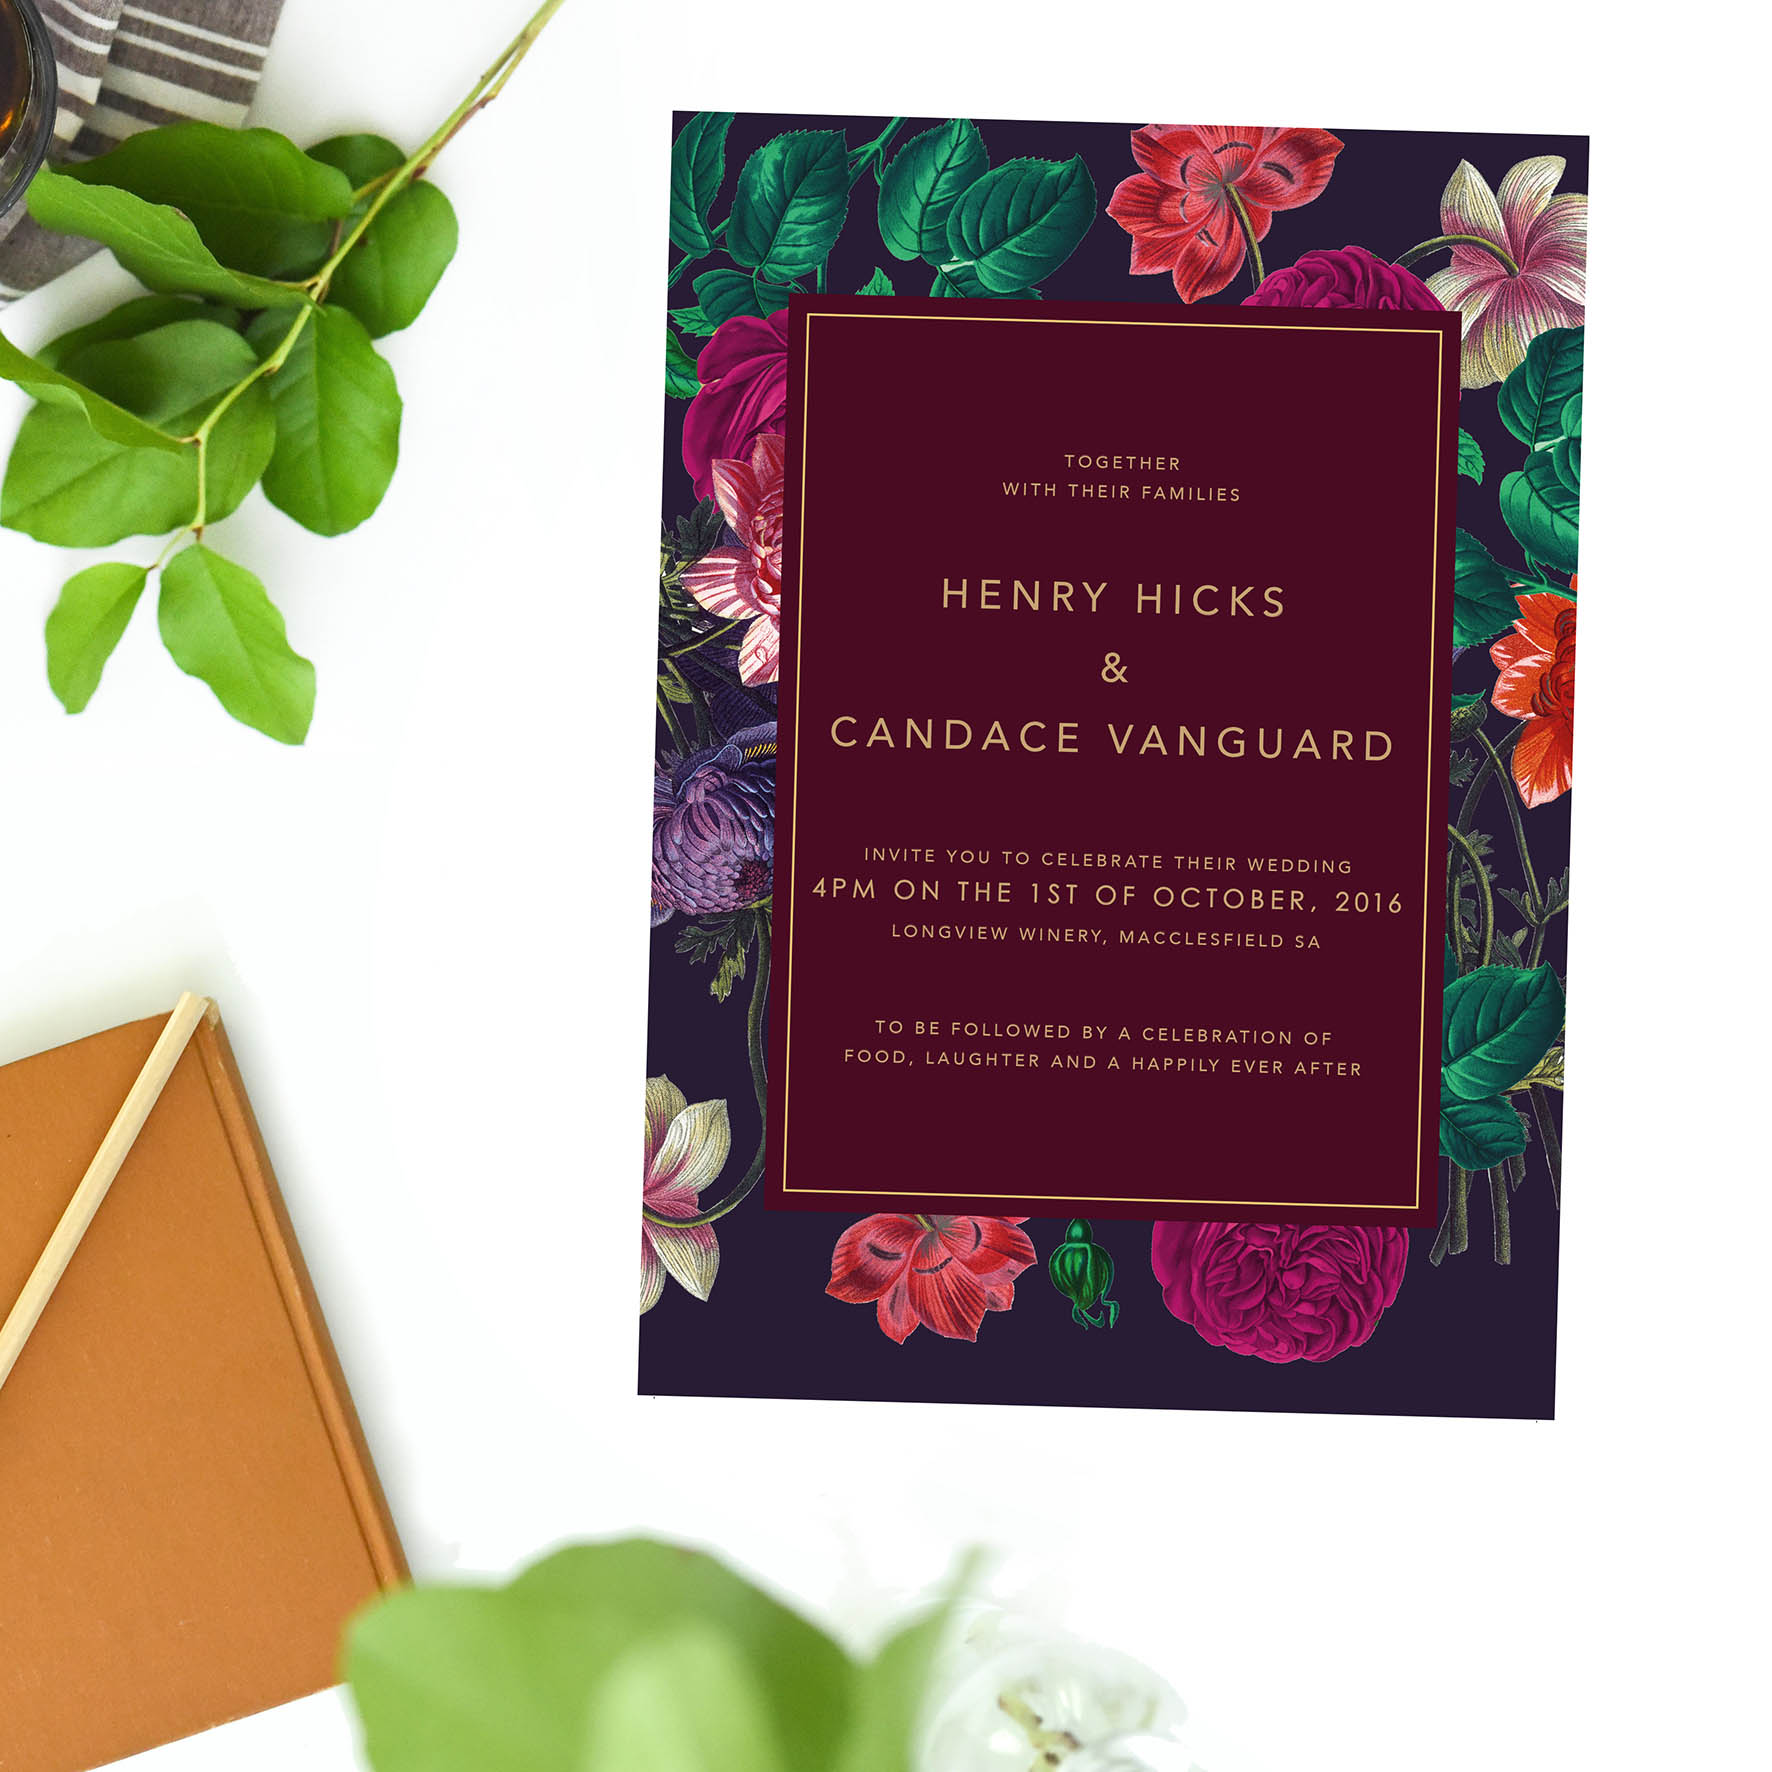 burgundy floral wedding invitations vintage botanical floral wedding invites australia sydney perth brisbane melbourne adelaide sail and swan wedding stationery studio pink red burgundy marsala purple contemporary